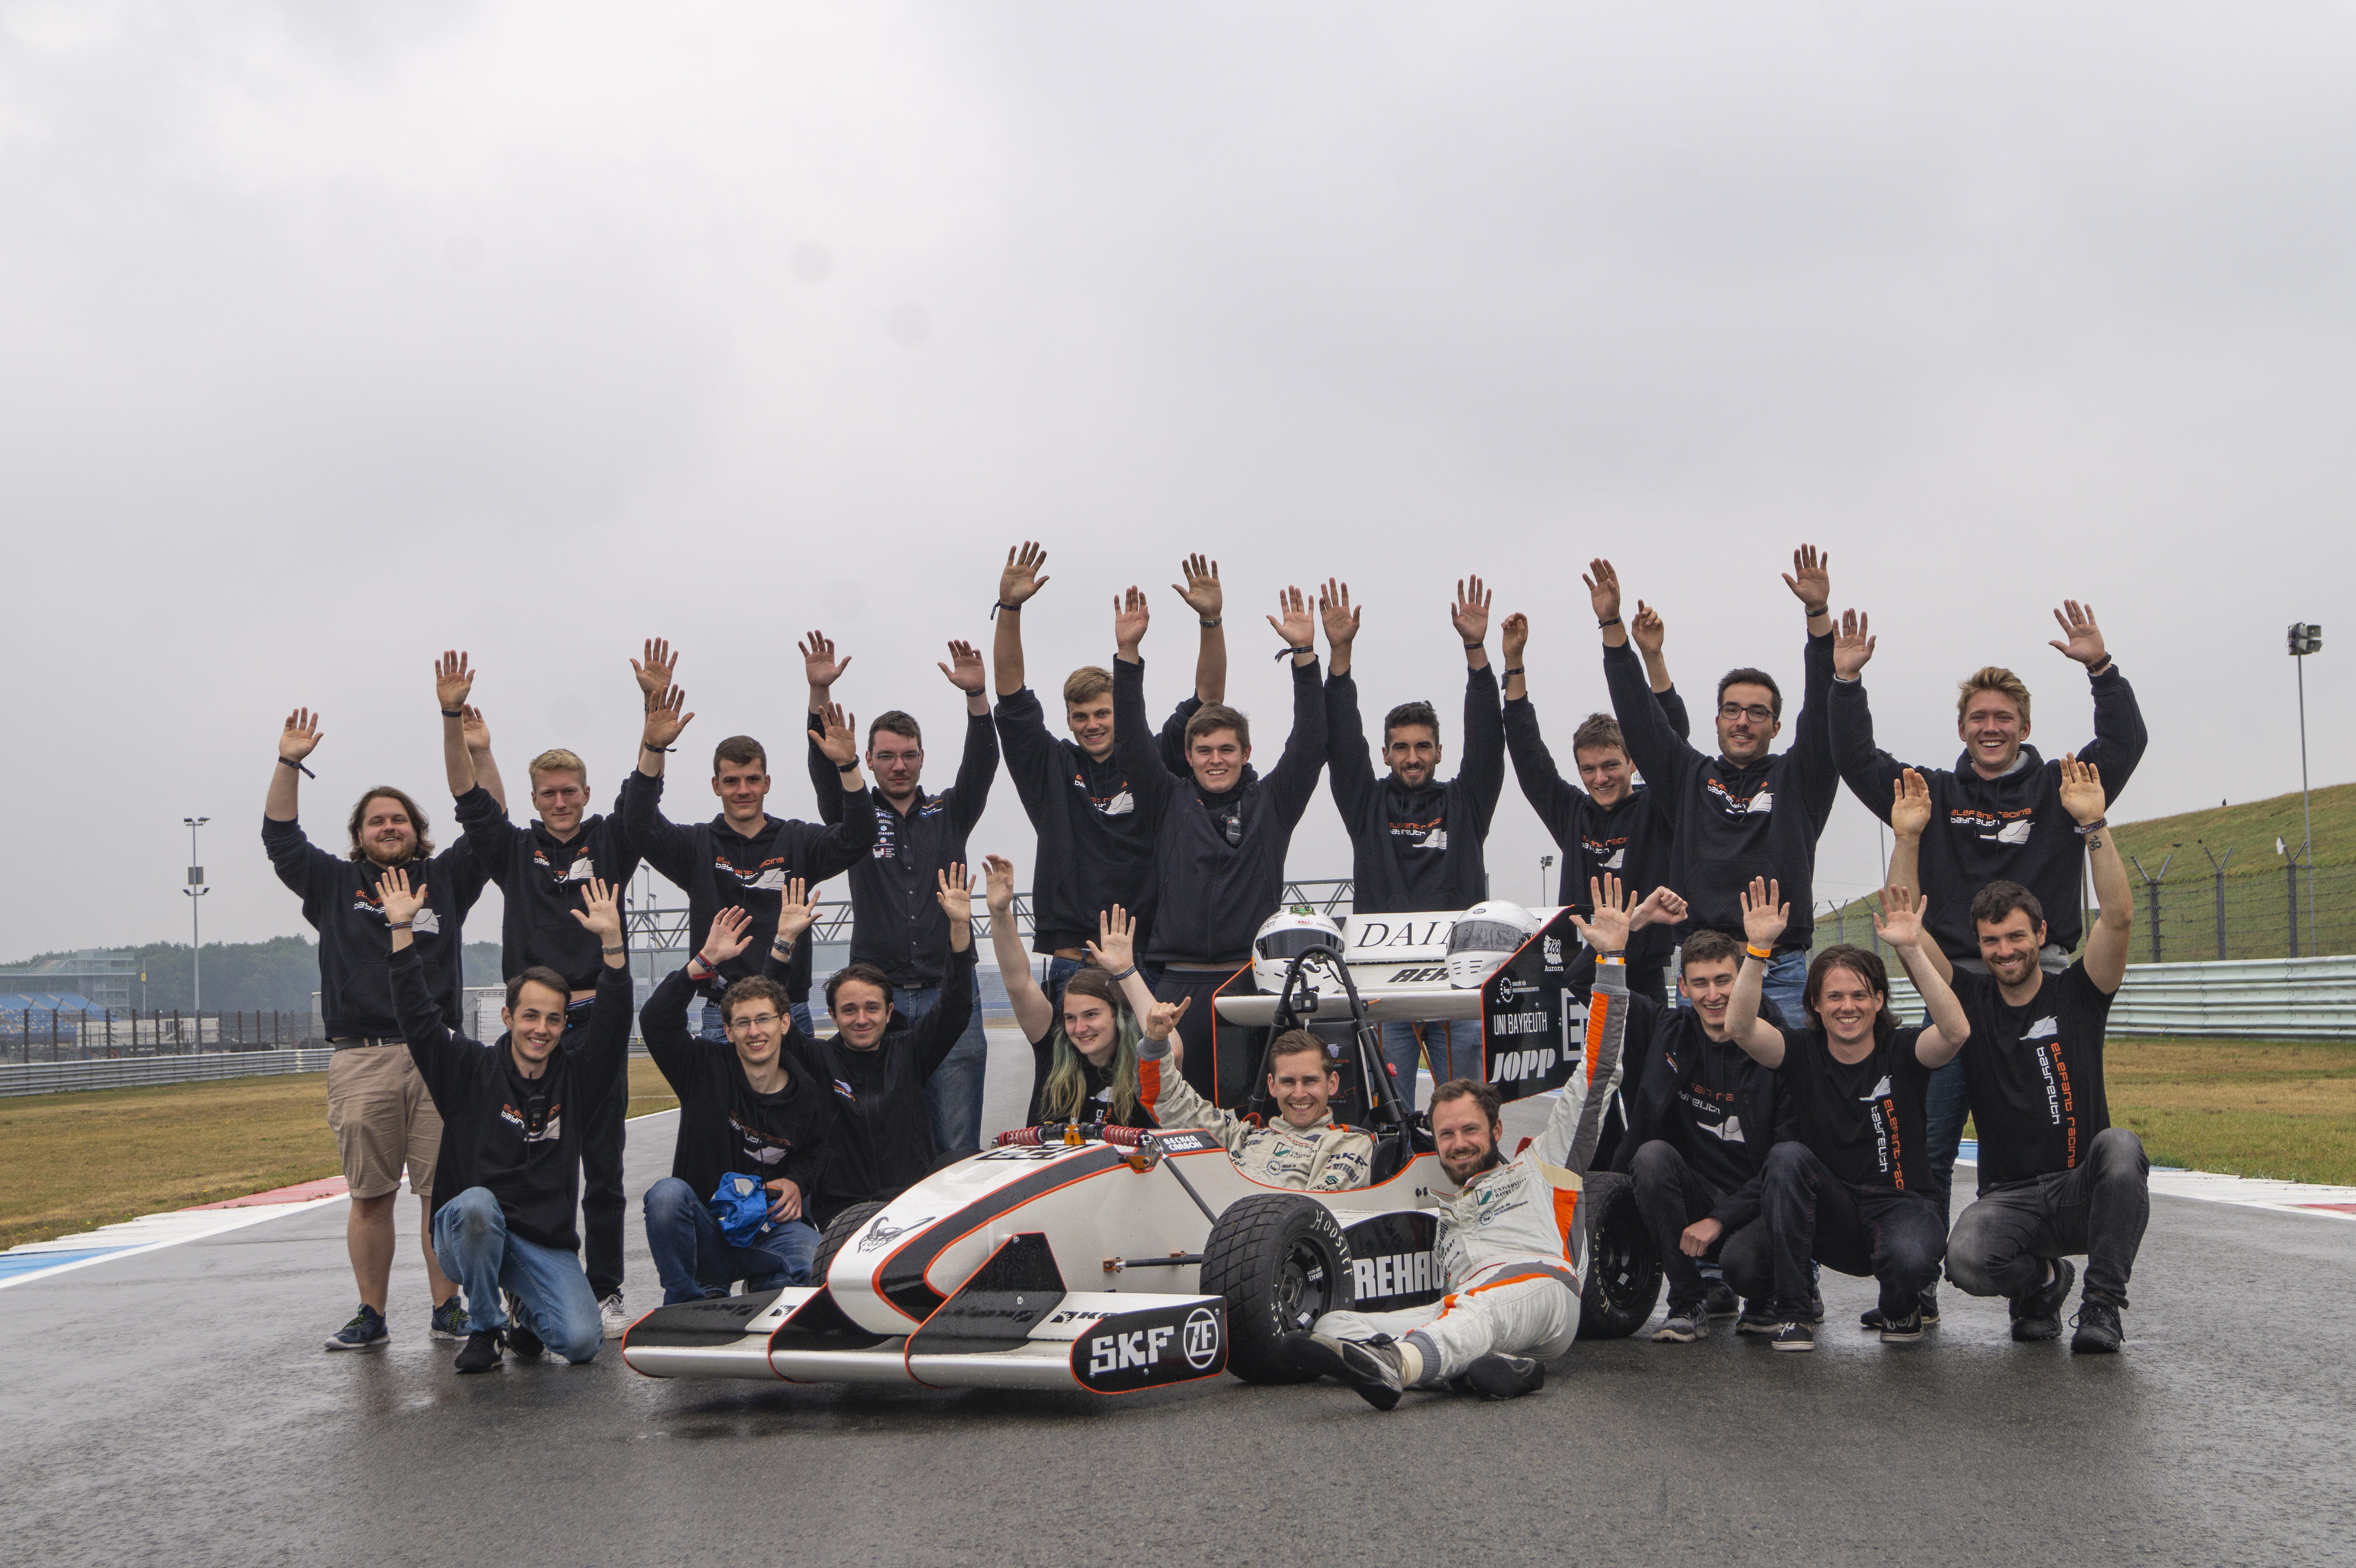 Elefant Racing Team